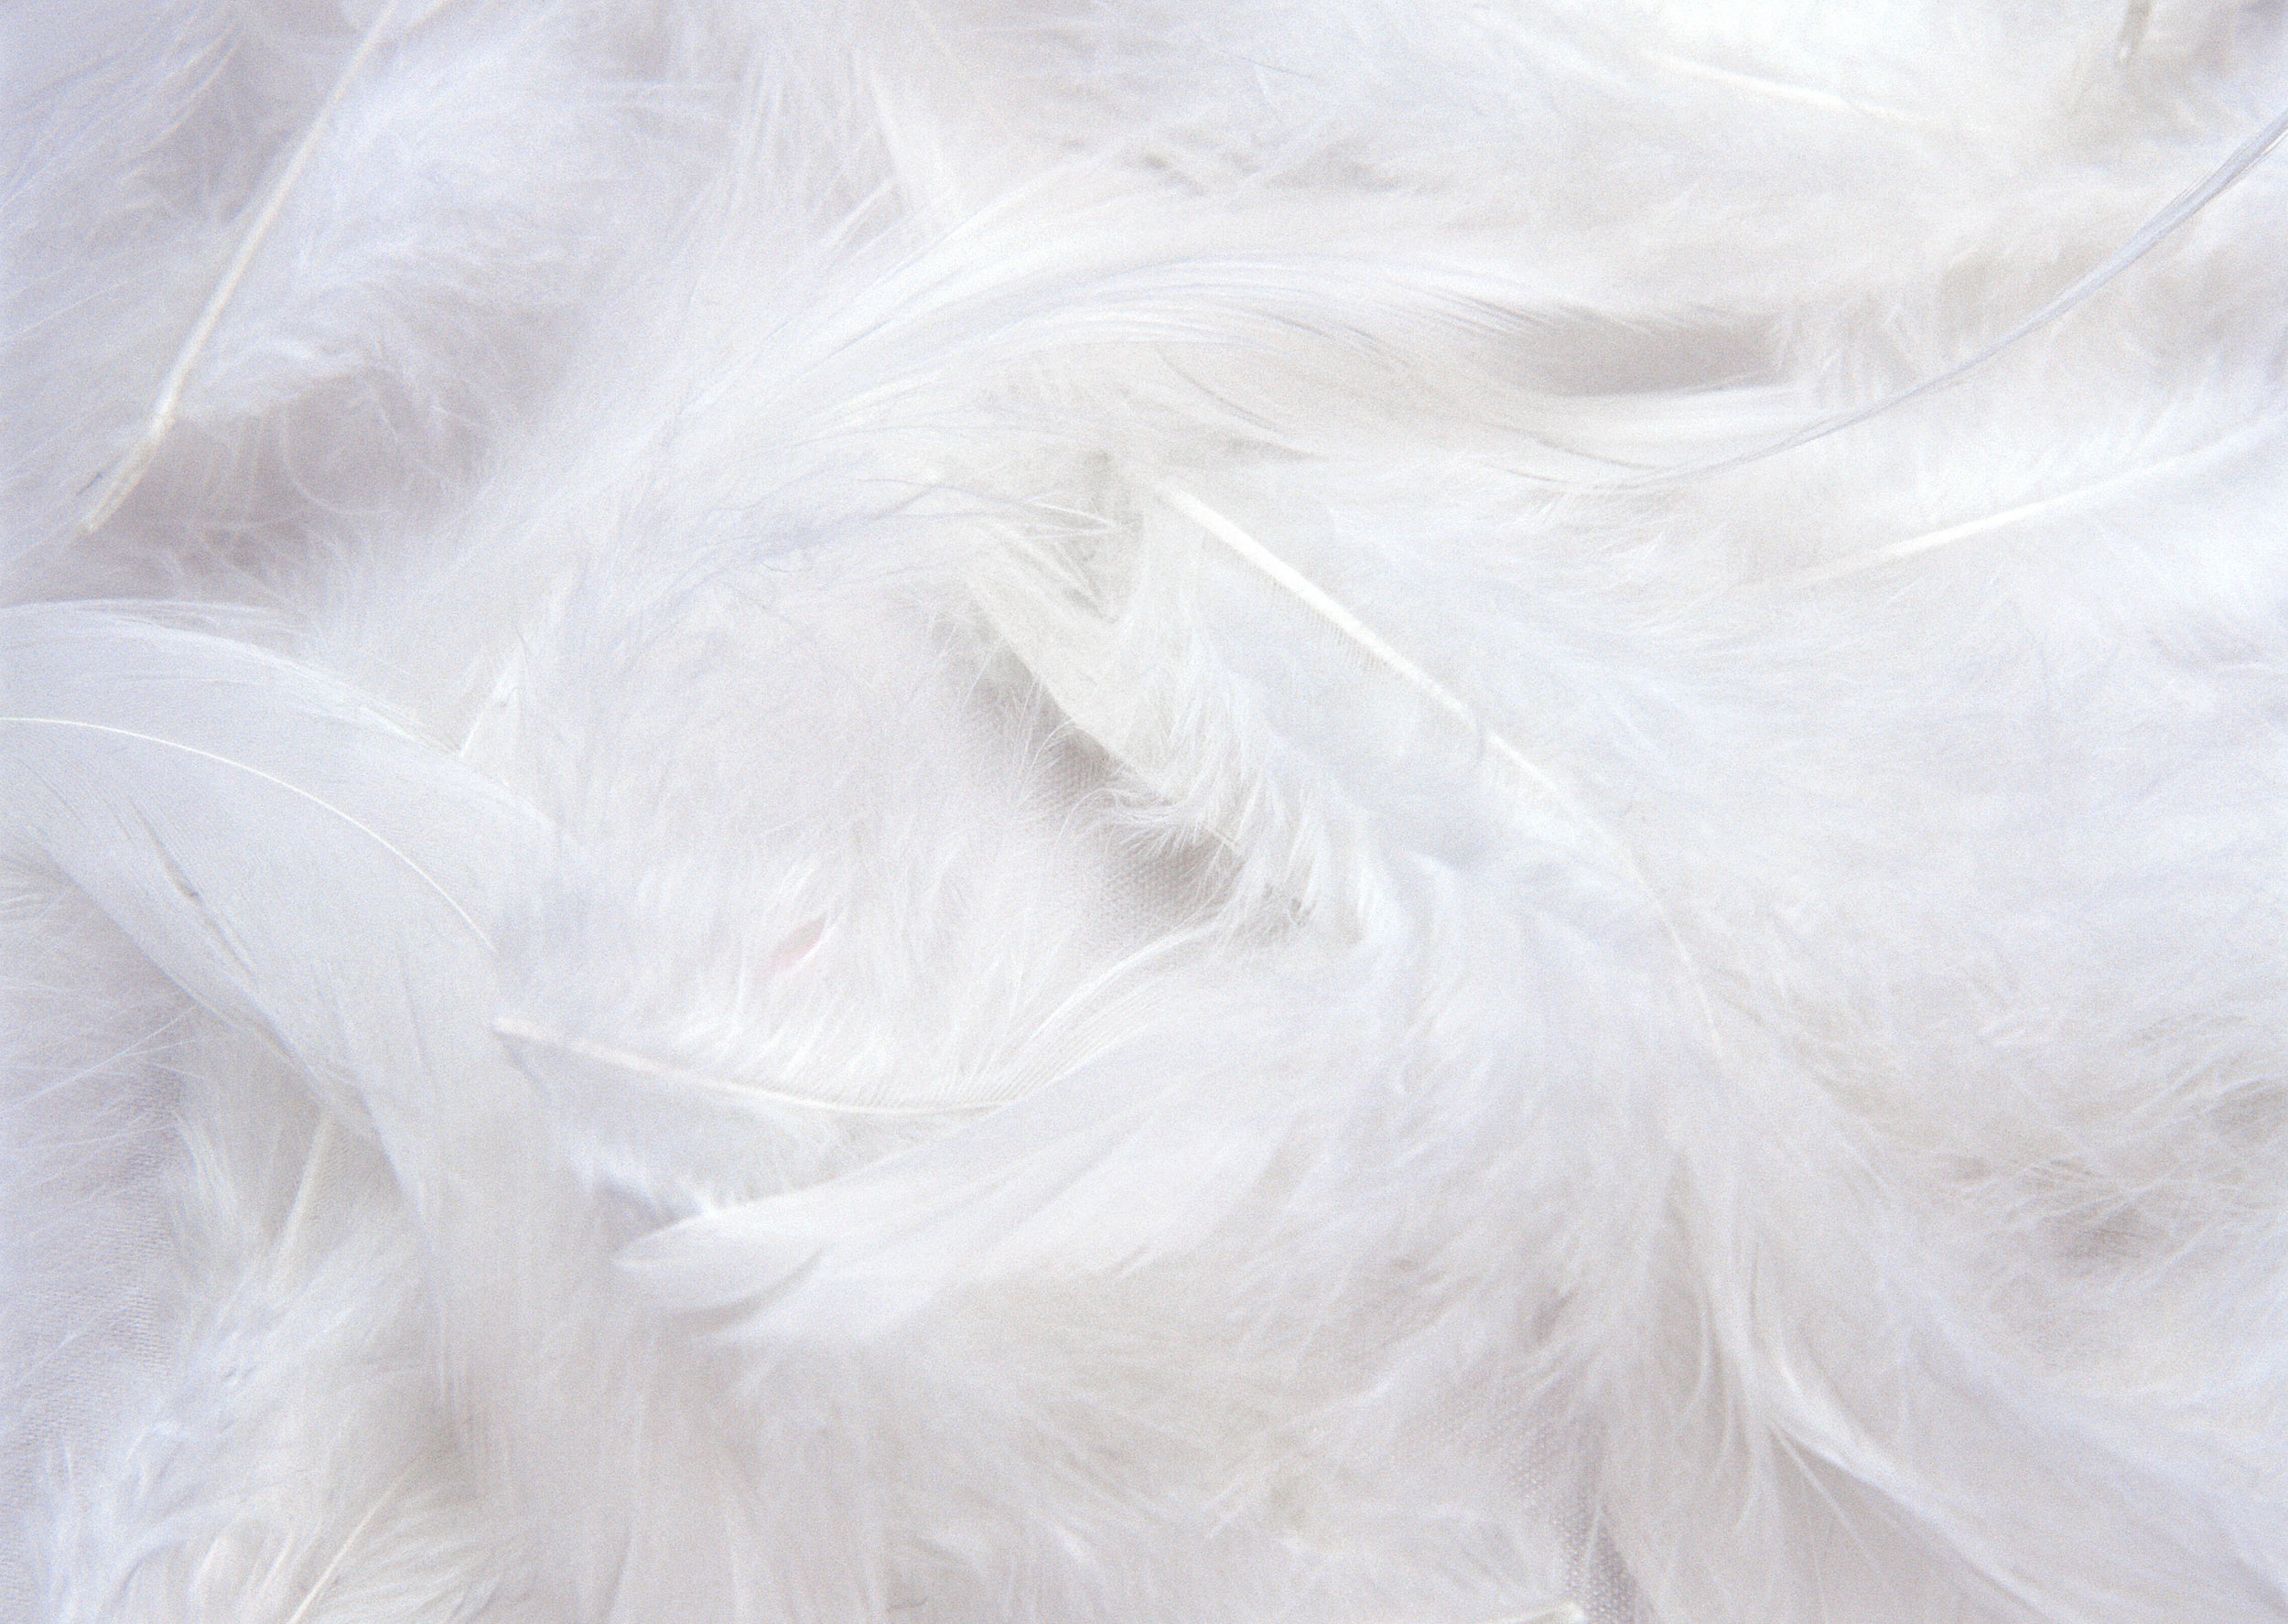 White_Feathers_Background.jpg